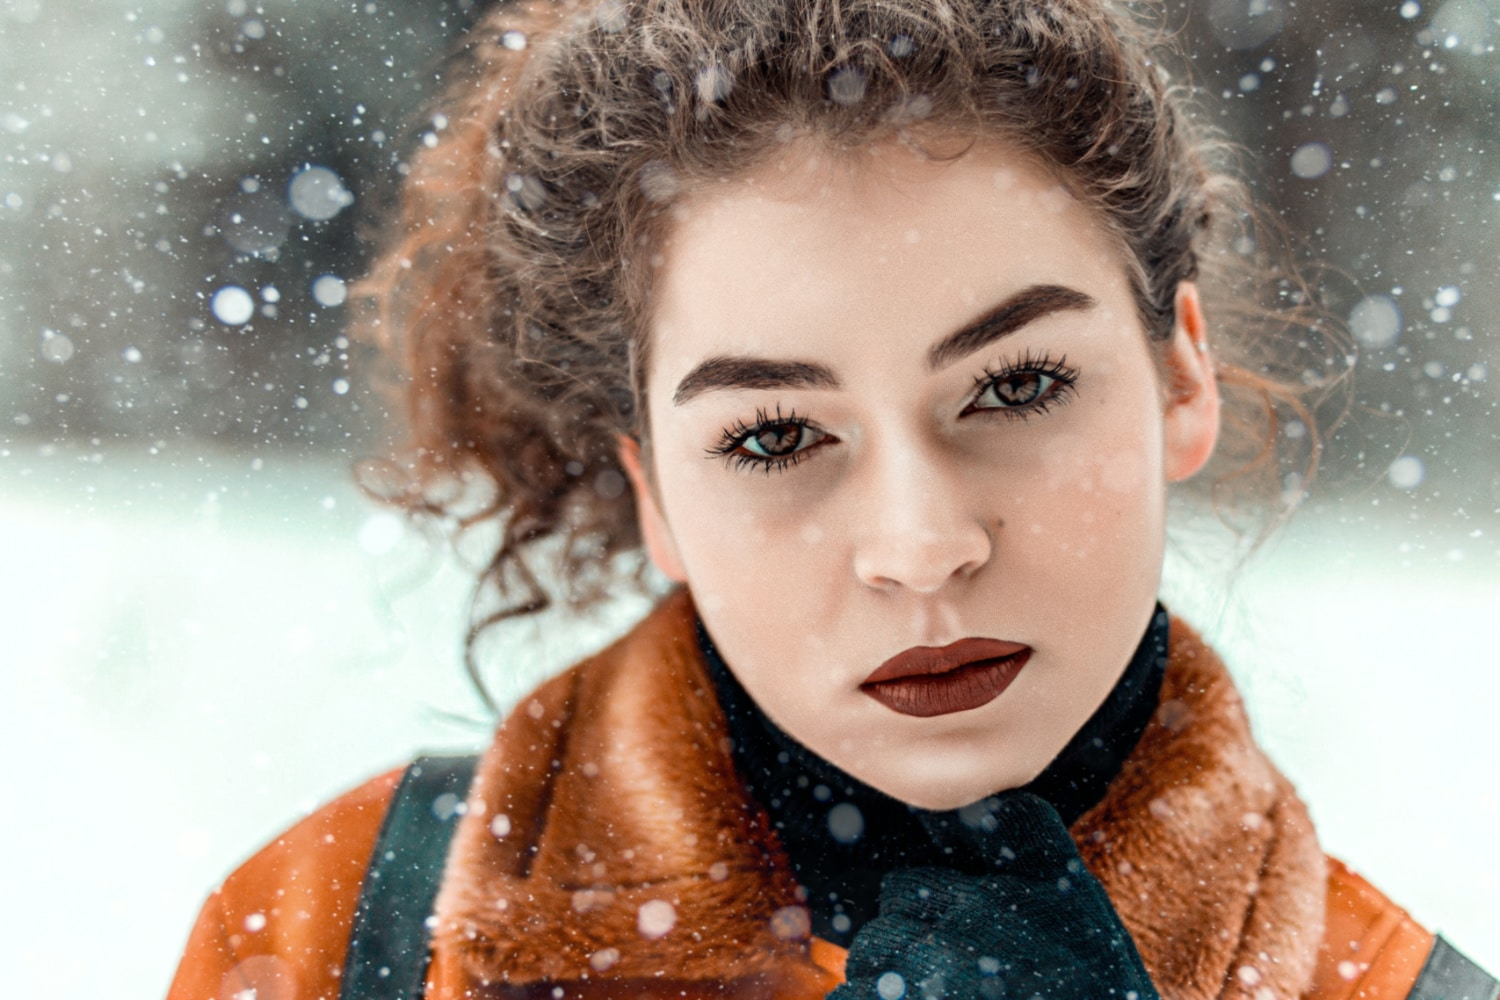 Closeup of serious woman's face with snow falling around - Skin Care Manhattan New York